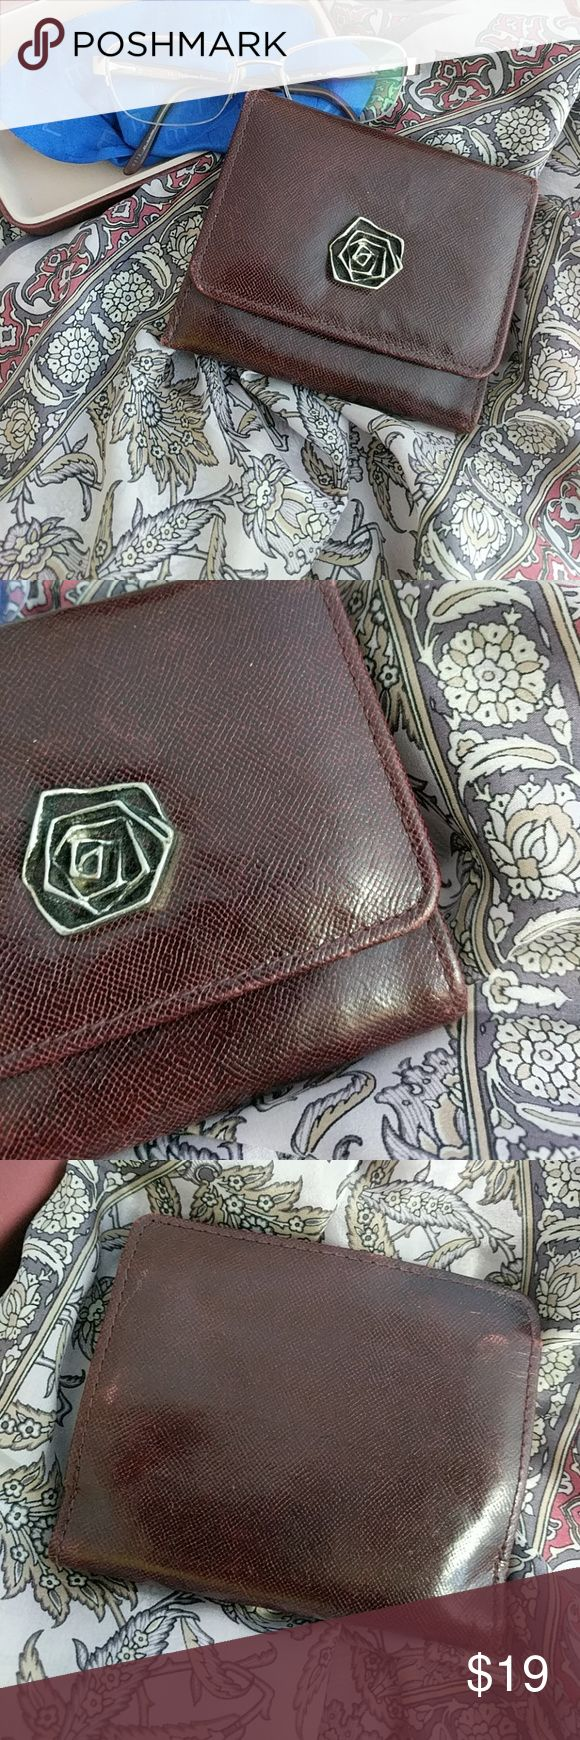 Vintage Rolf's cowhide wallet Gorgeous deep rich burgundy textured leather with Chanel-style floret.  The back has some wear giving a distressed appearance, adding to the timeless beauty of this piece.  Coin purse and billfold.  Space for 4 credit cards, and two picture ids, cash, and coin.  Made in China. Rolf's Bags Wallets